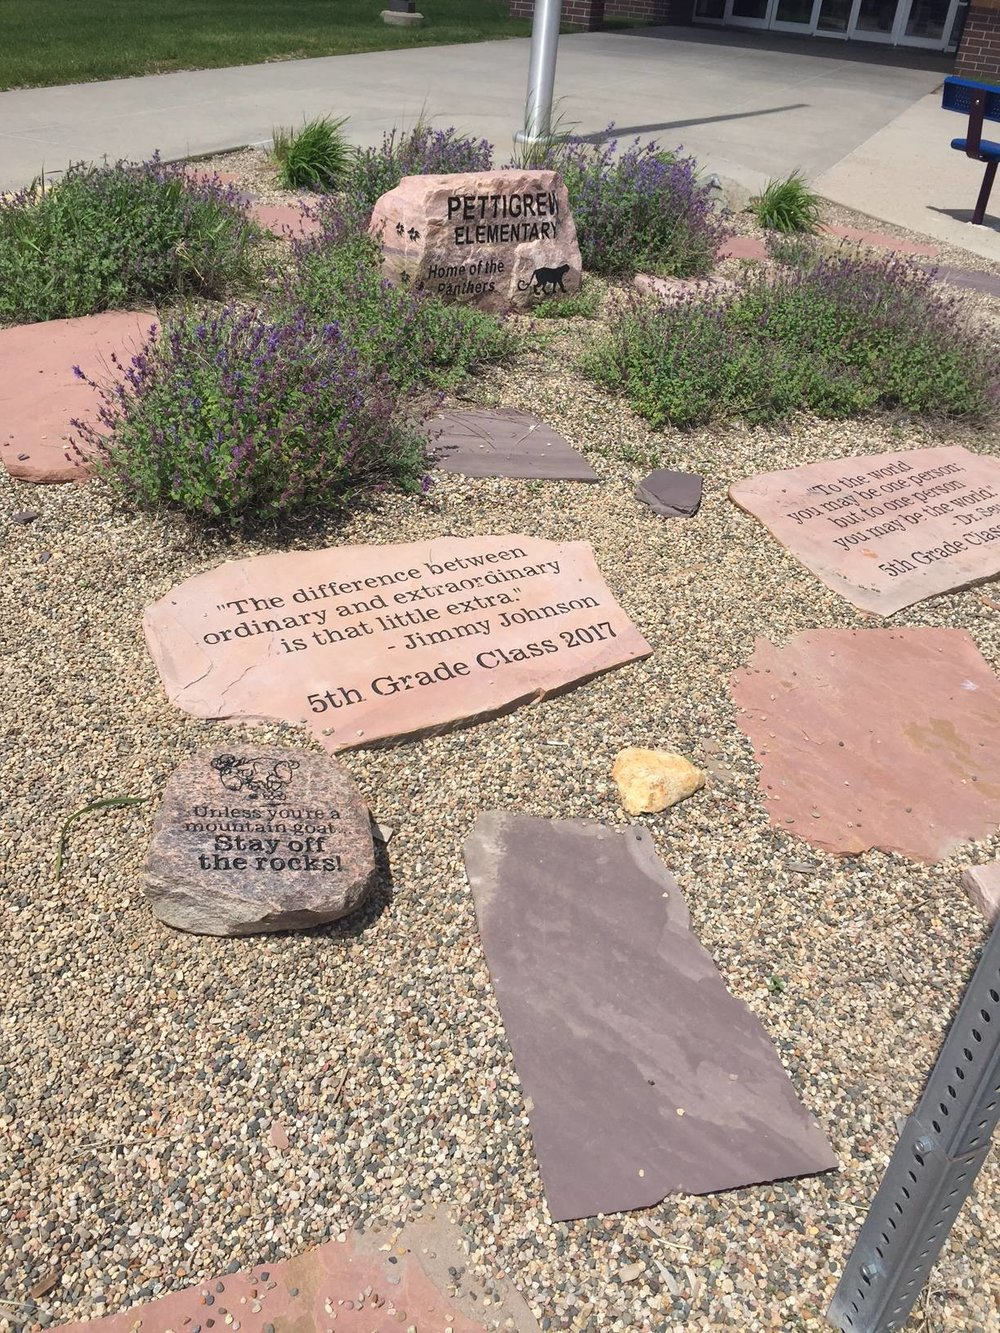 Image of rock garden in front of Pettigrew Elementary school.